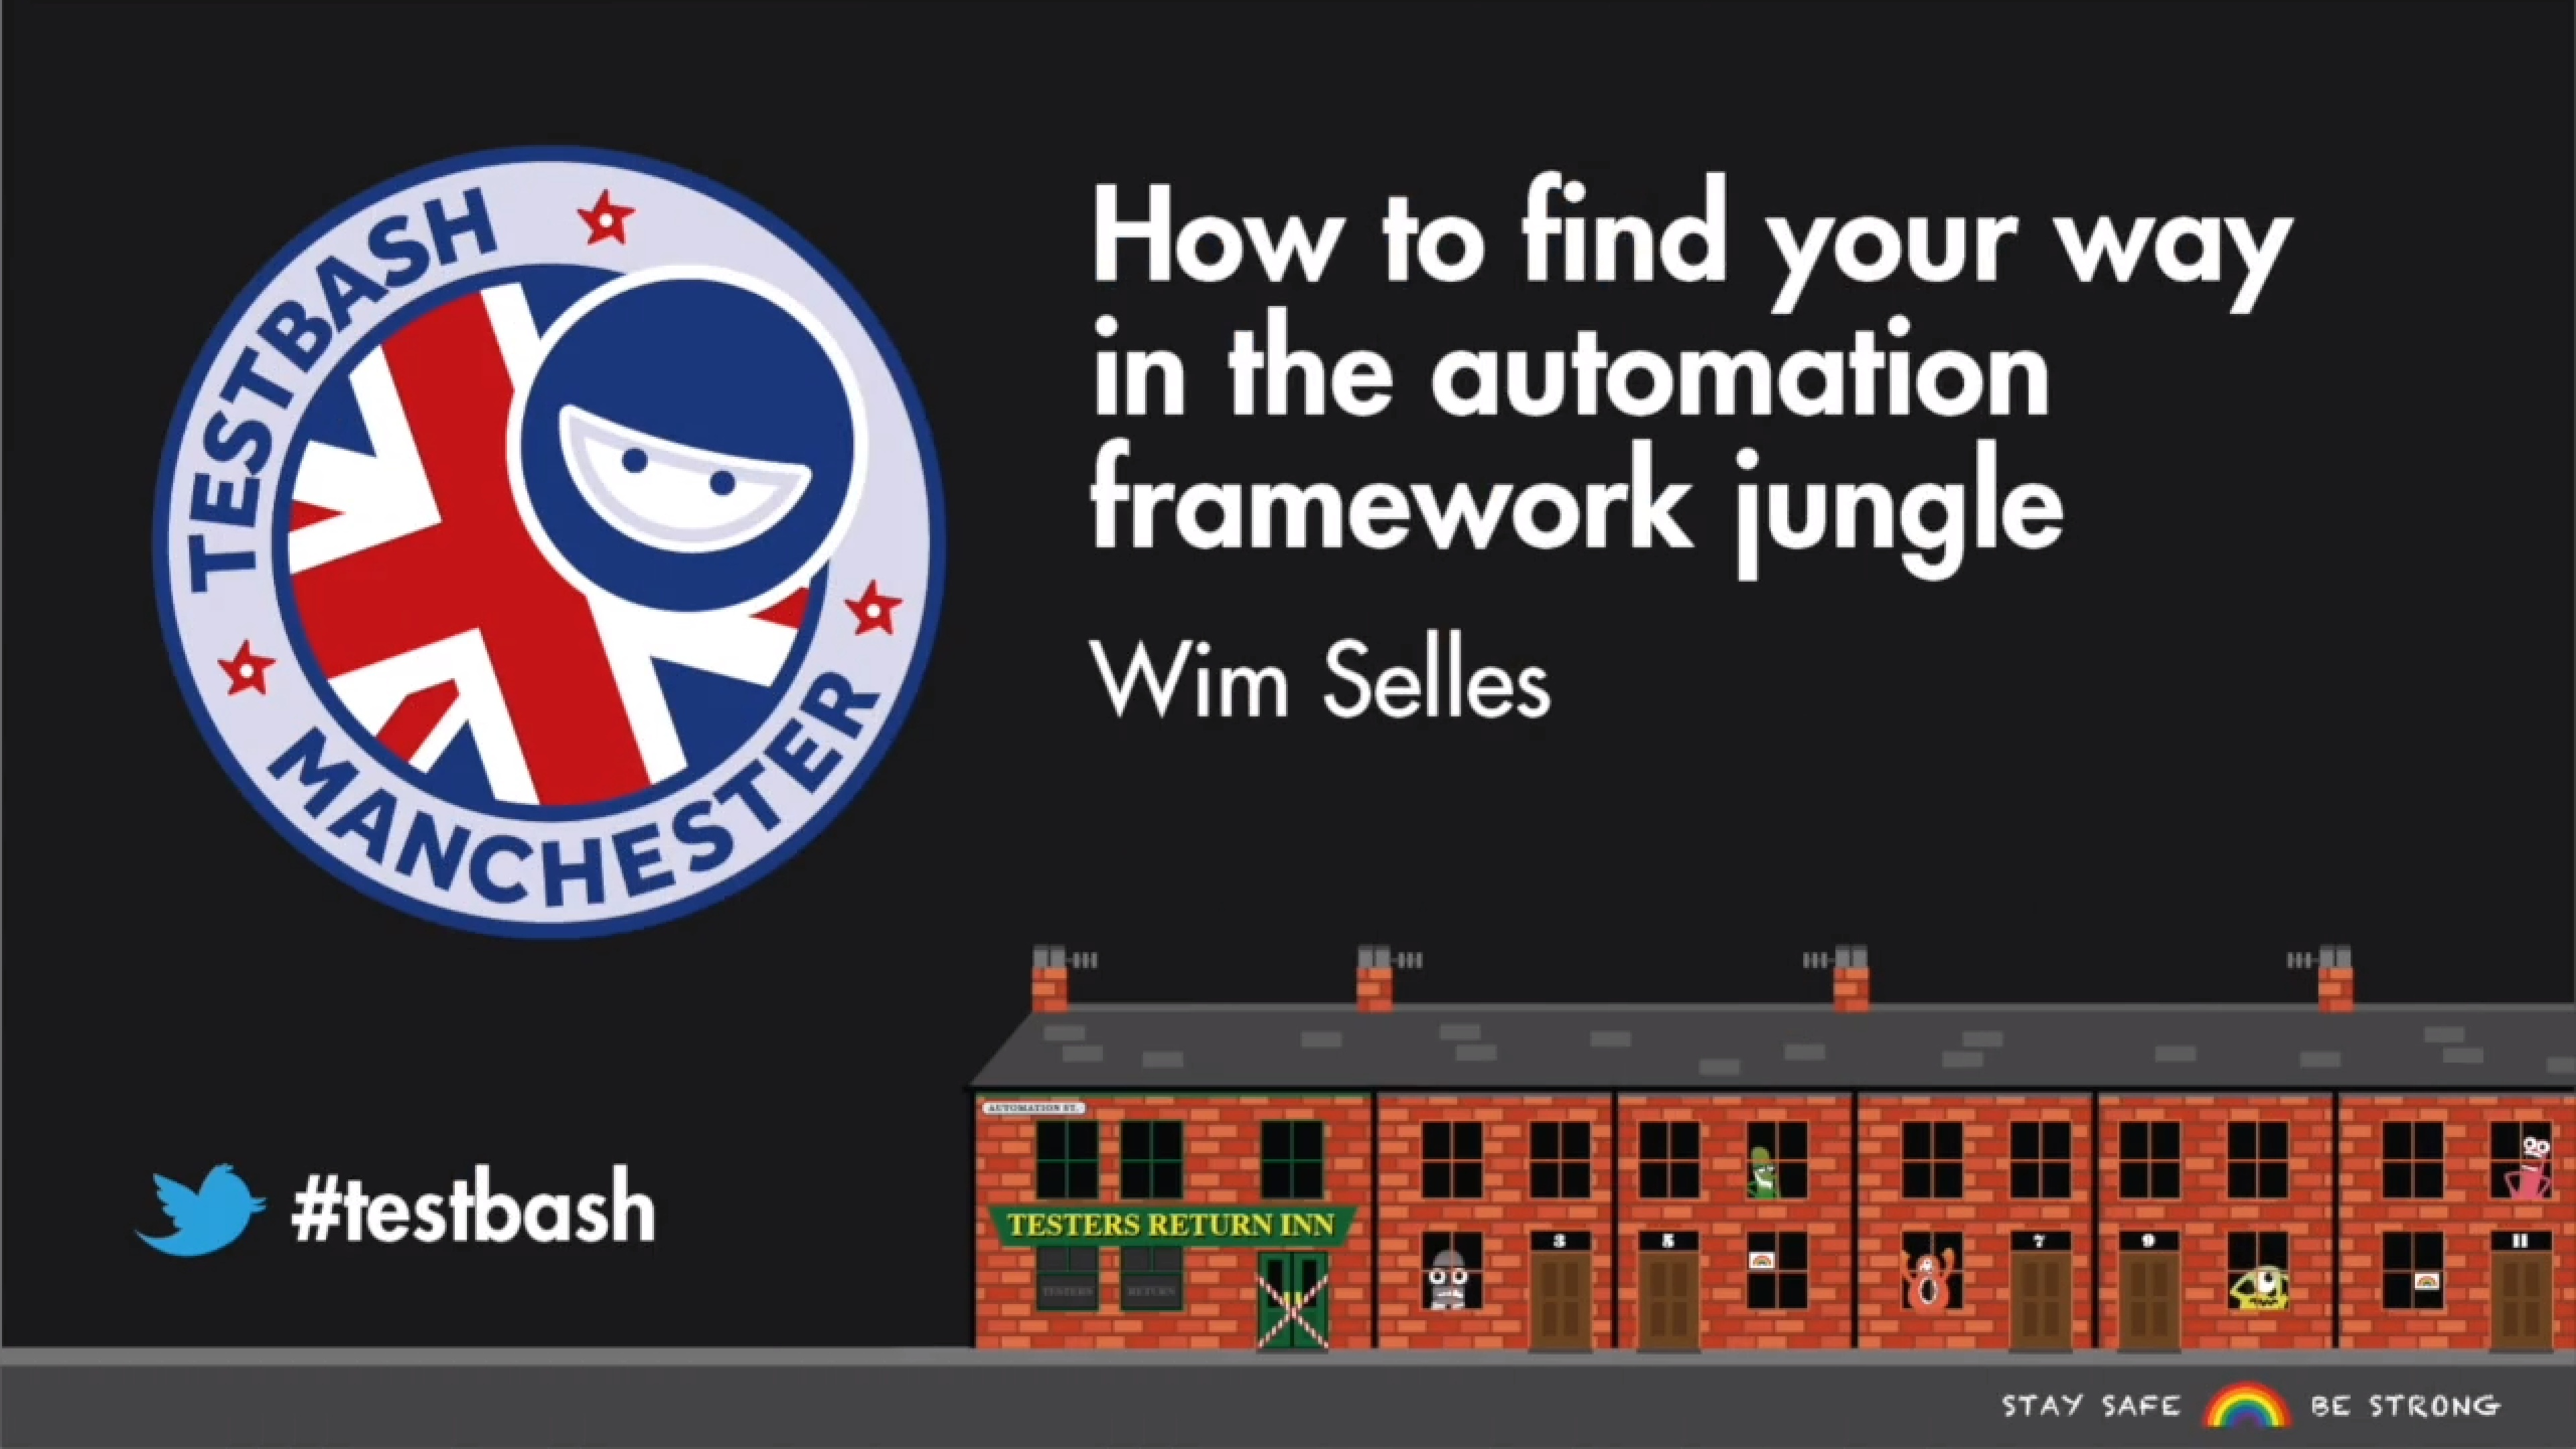 How to Find Your Way in the Automation Framework Jungle - Wim Selles